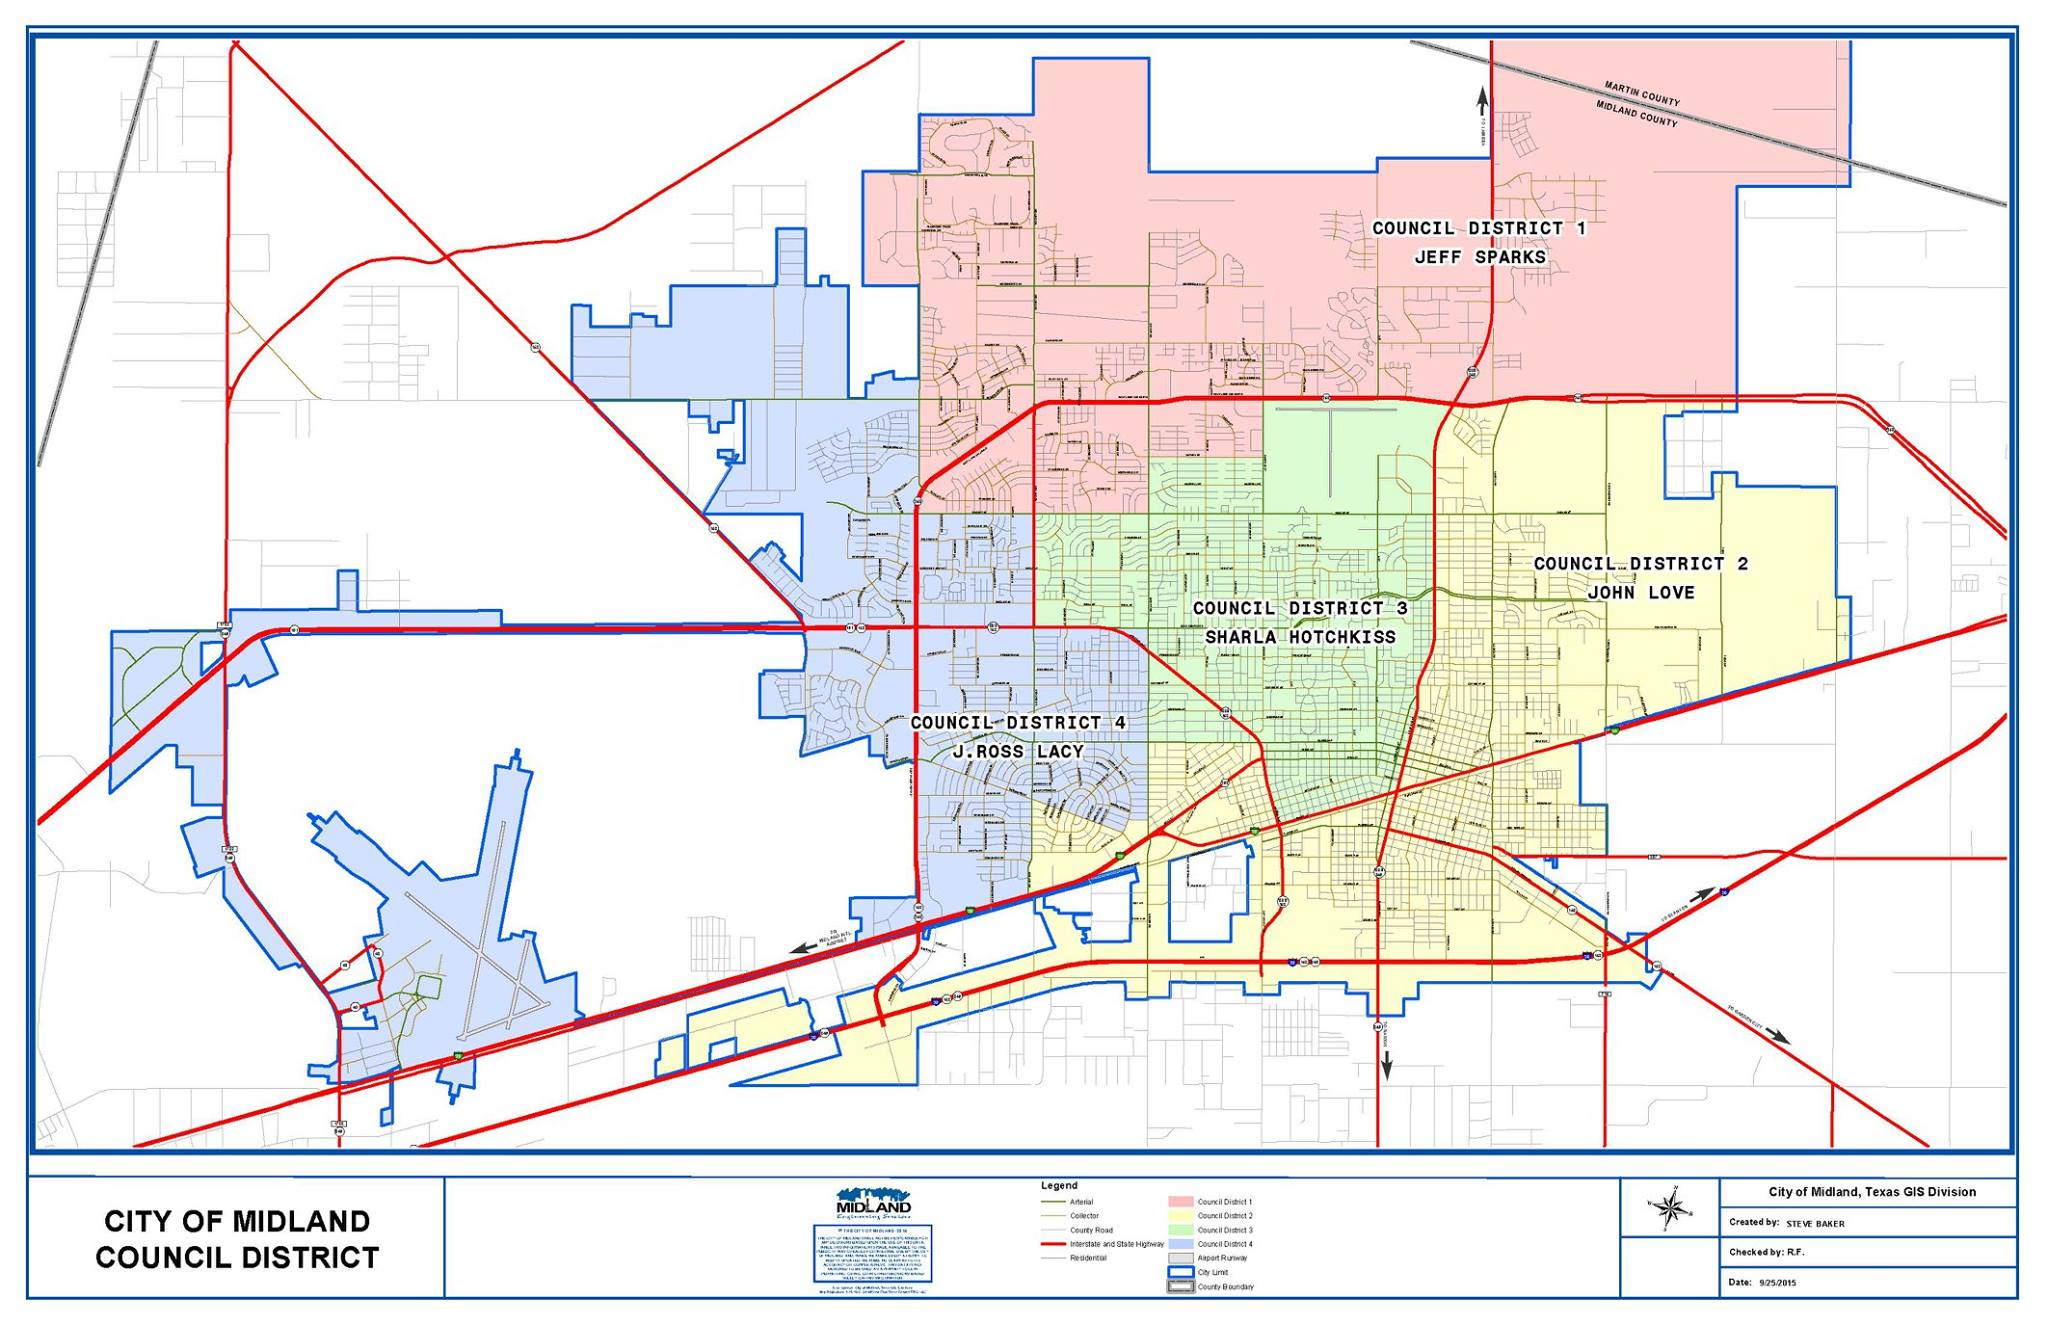 City Of Midland To Hold Public Meetings For District 2 Improvements